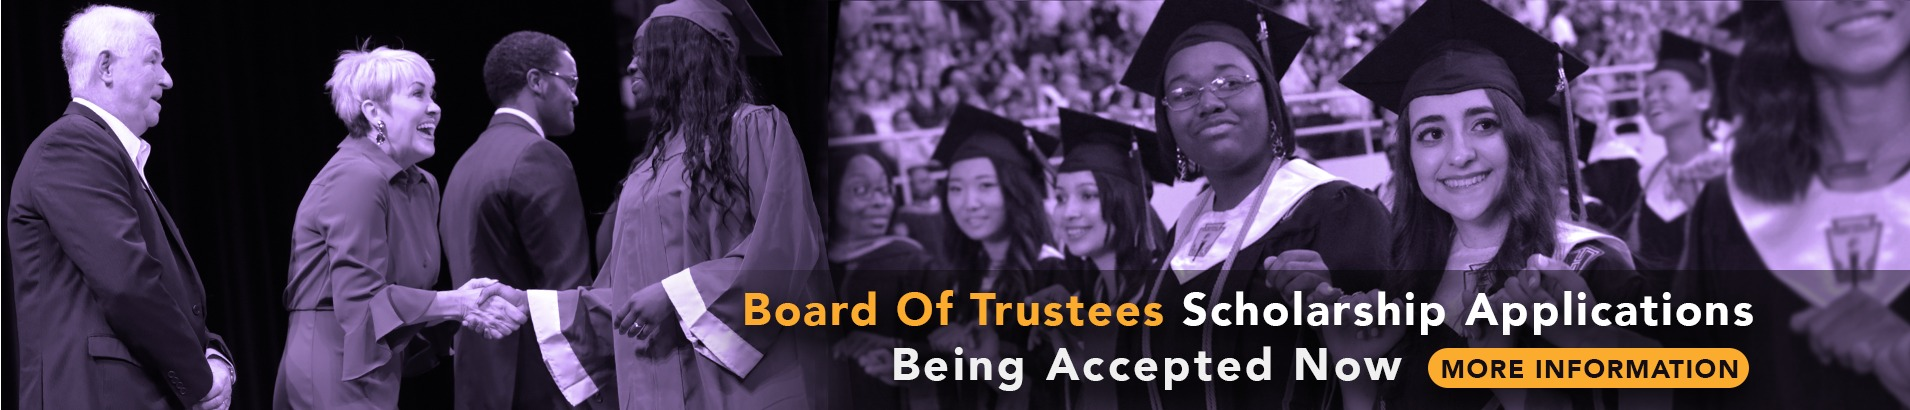 Board of Trustees scholarship web banner, pictures of students on graduation day while the Board Members congratulate them!